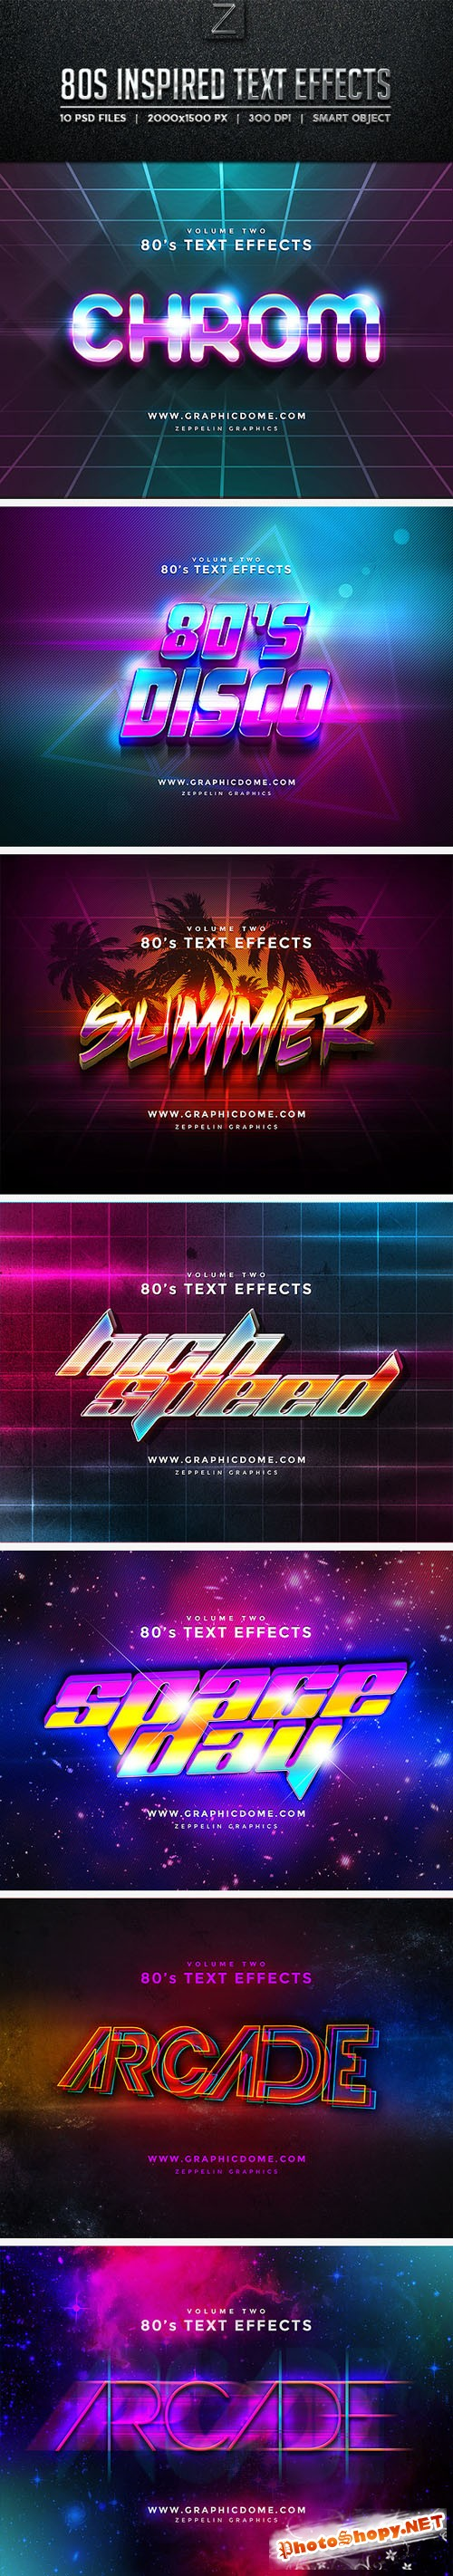 80s Text Effects - Graphicriver 10256165